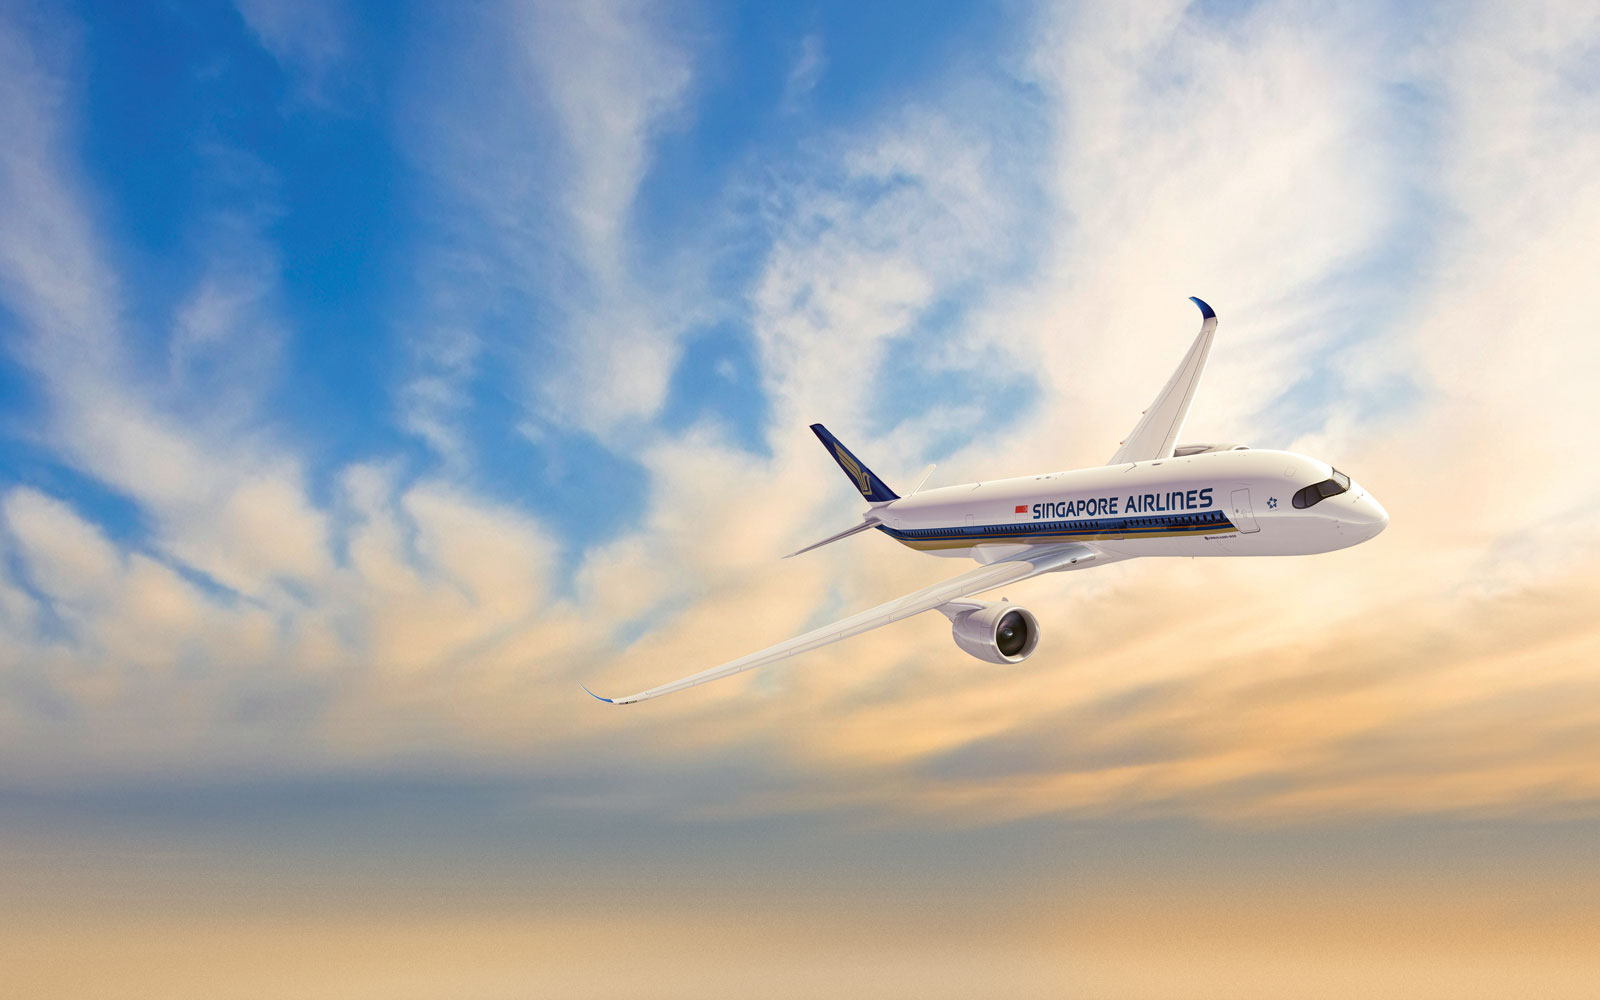 Singapore Airlines Named the Best in the World for the Past 22 Years